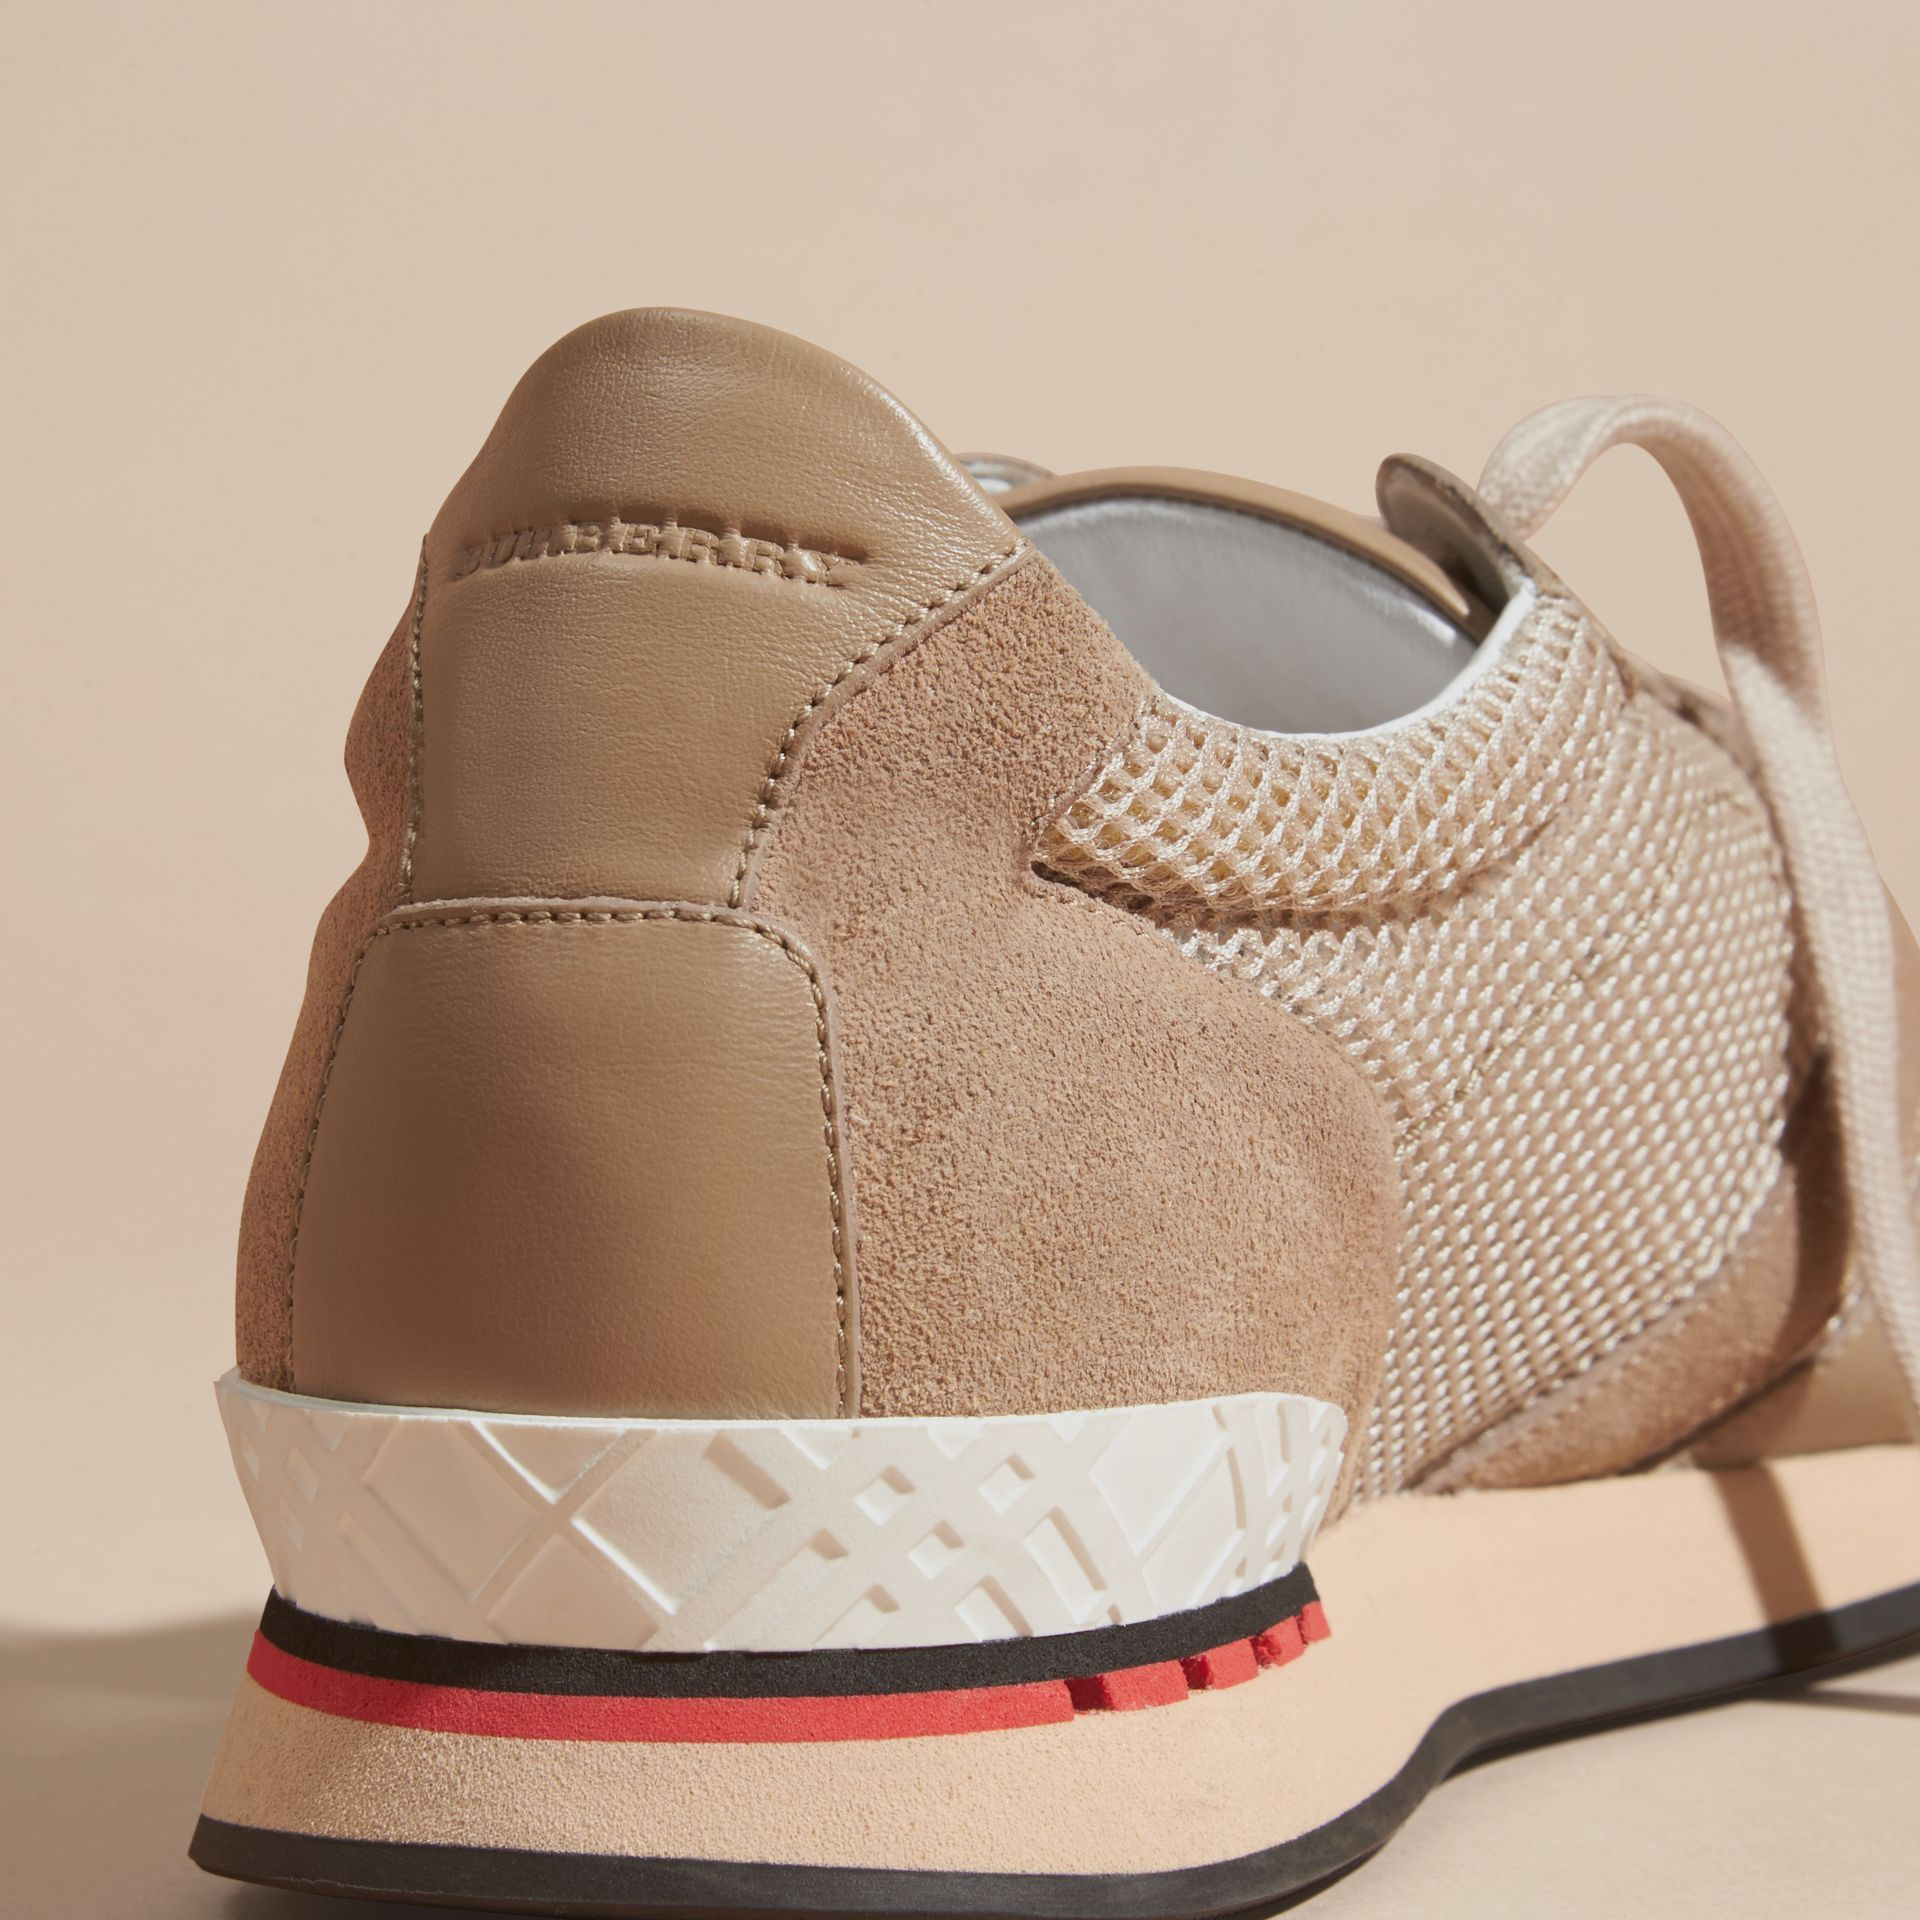 Camel The Field Sneaker in Suede and Mesh Camel - gallery image 2